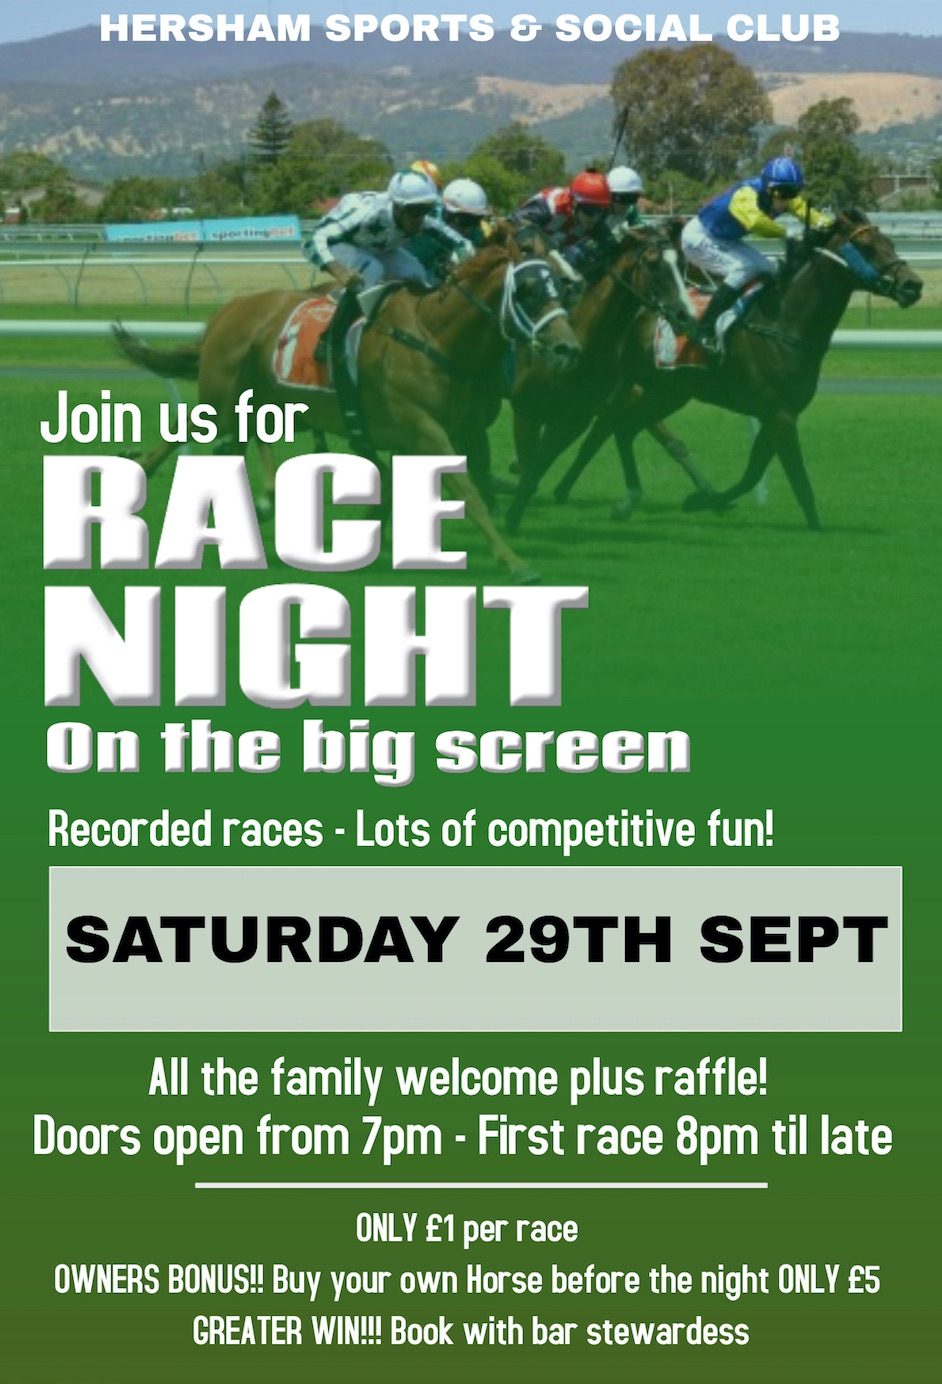 Race Night Poster - Sept